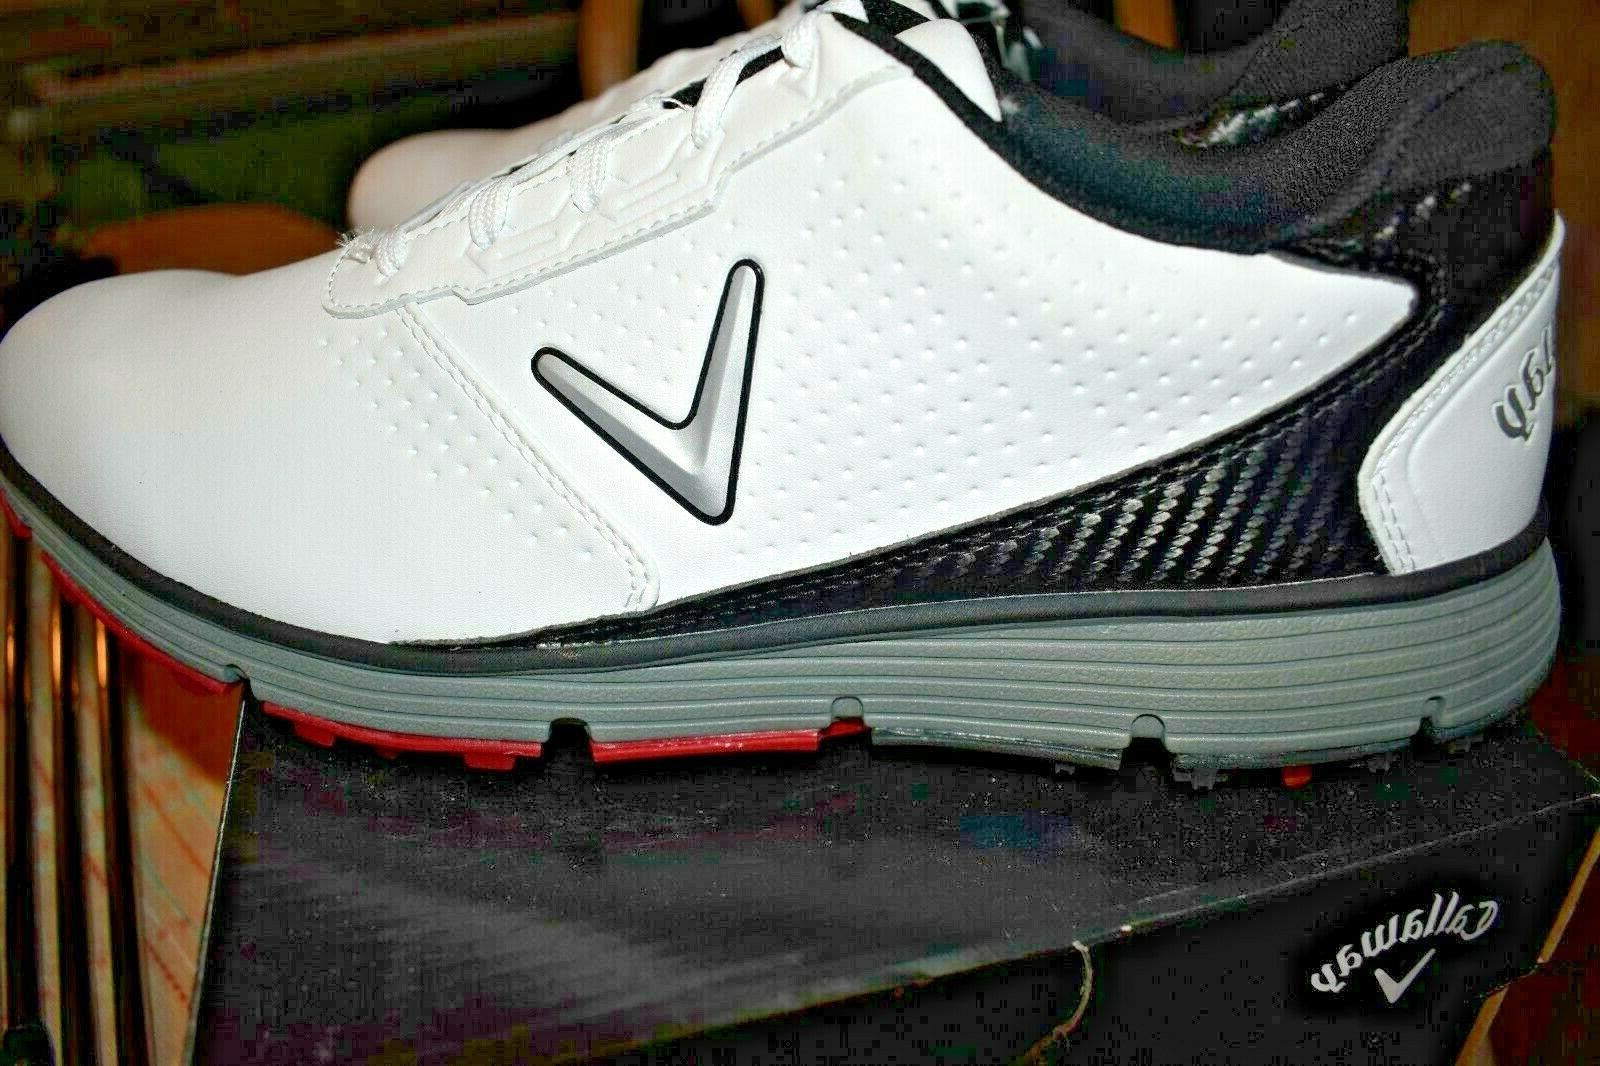 NEW in box, Golf- TRX White/Black, 13